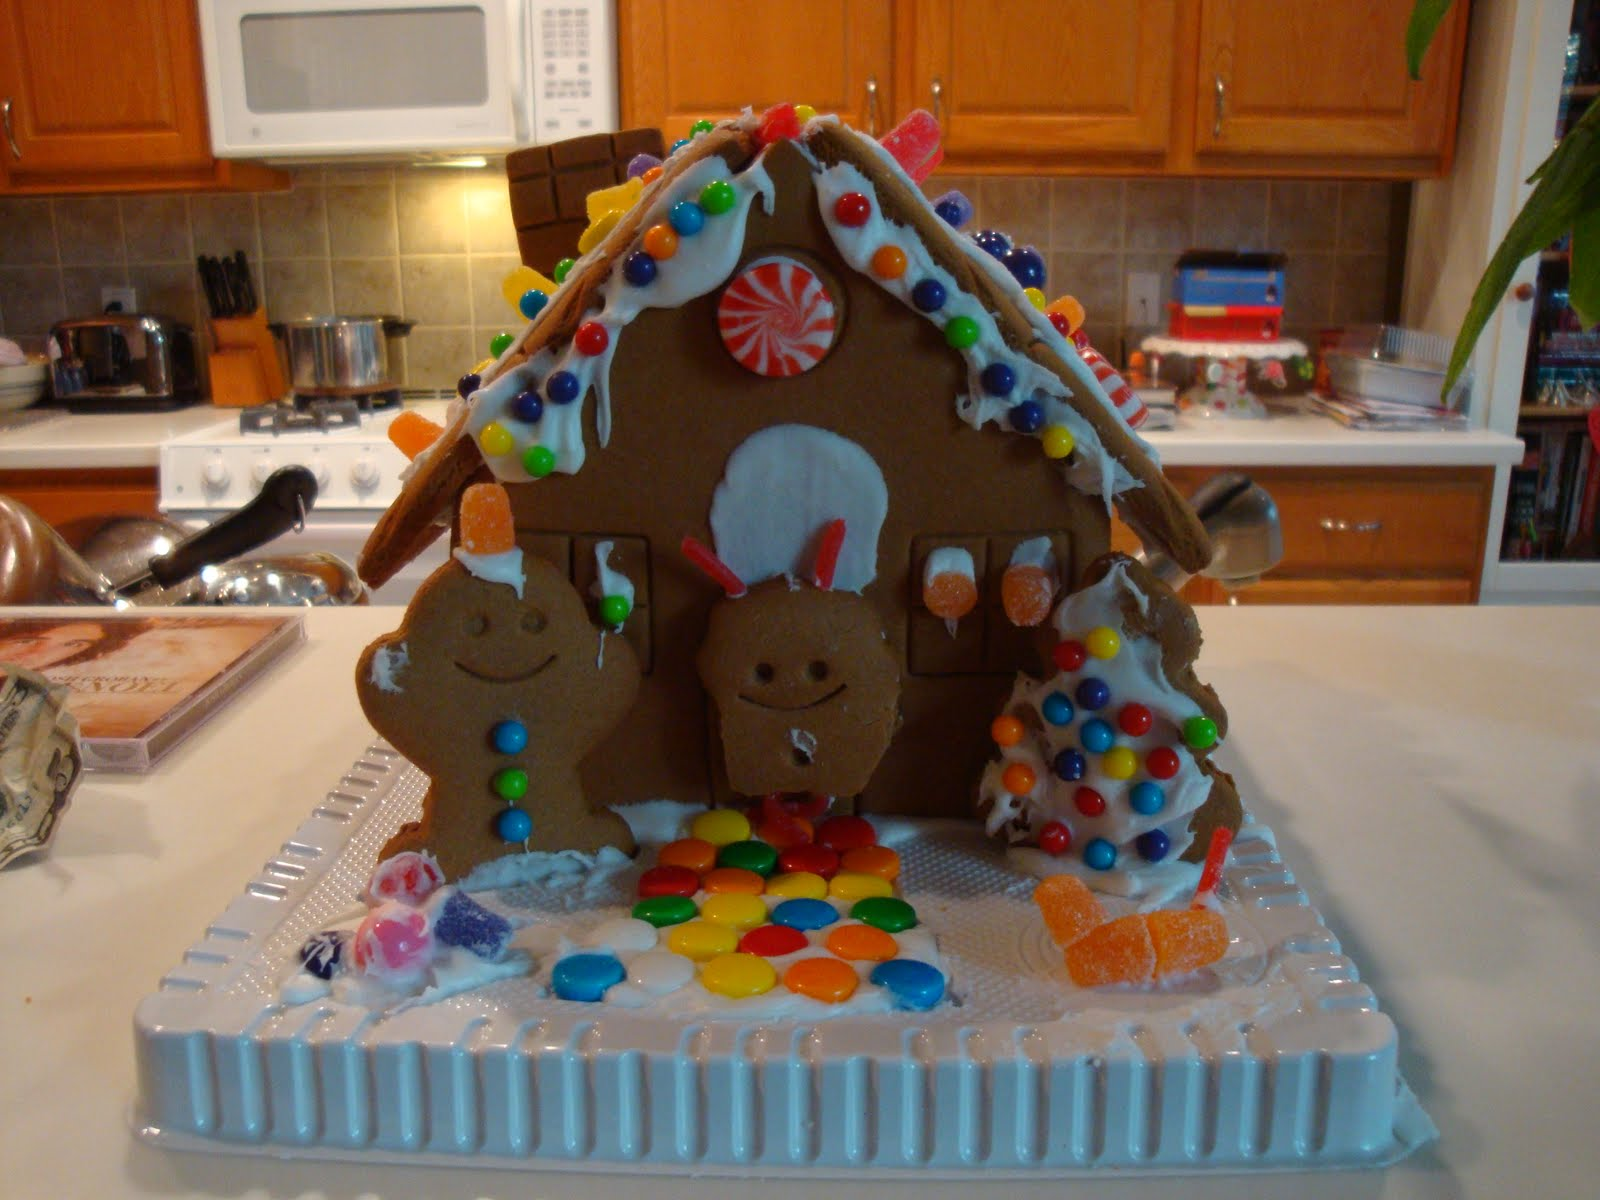 penguinster the official gingerbread house decorating